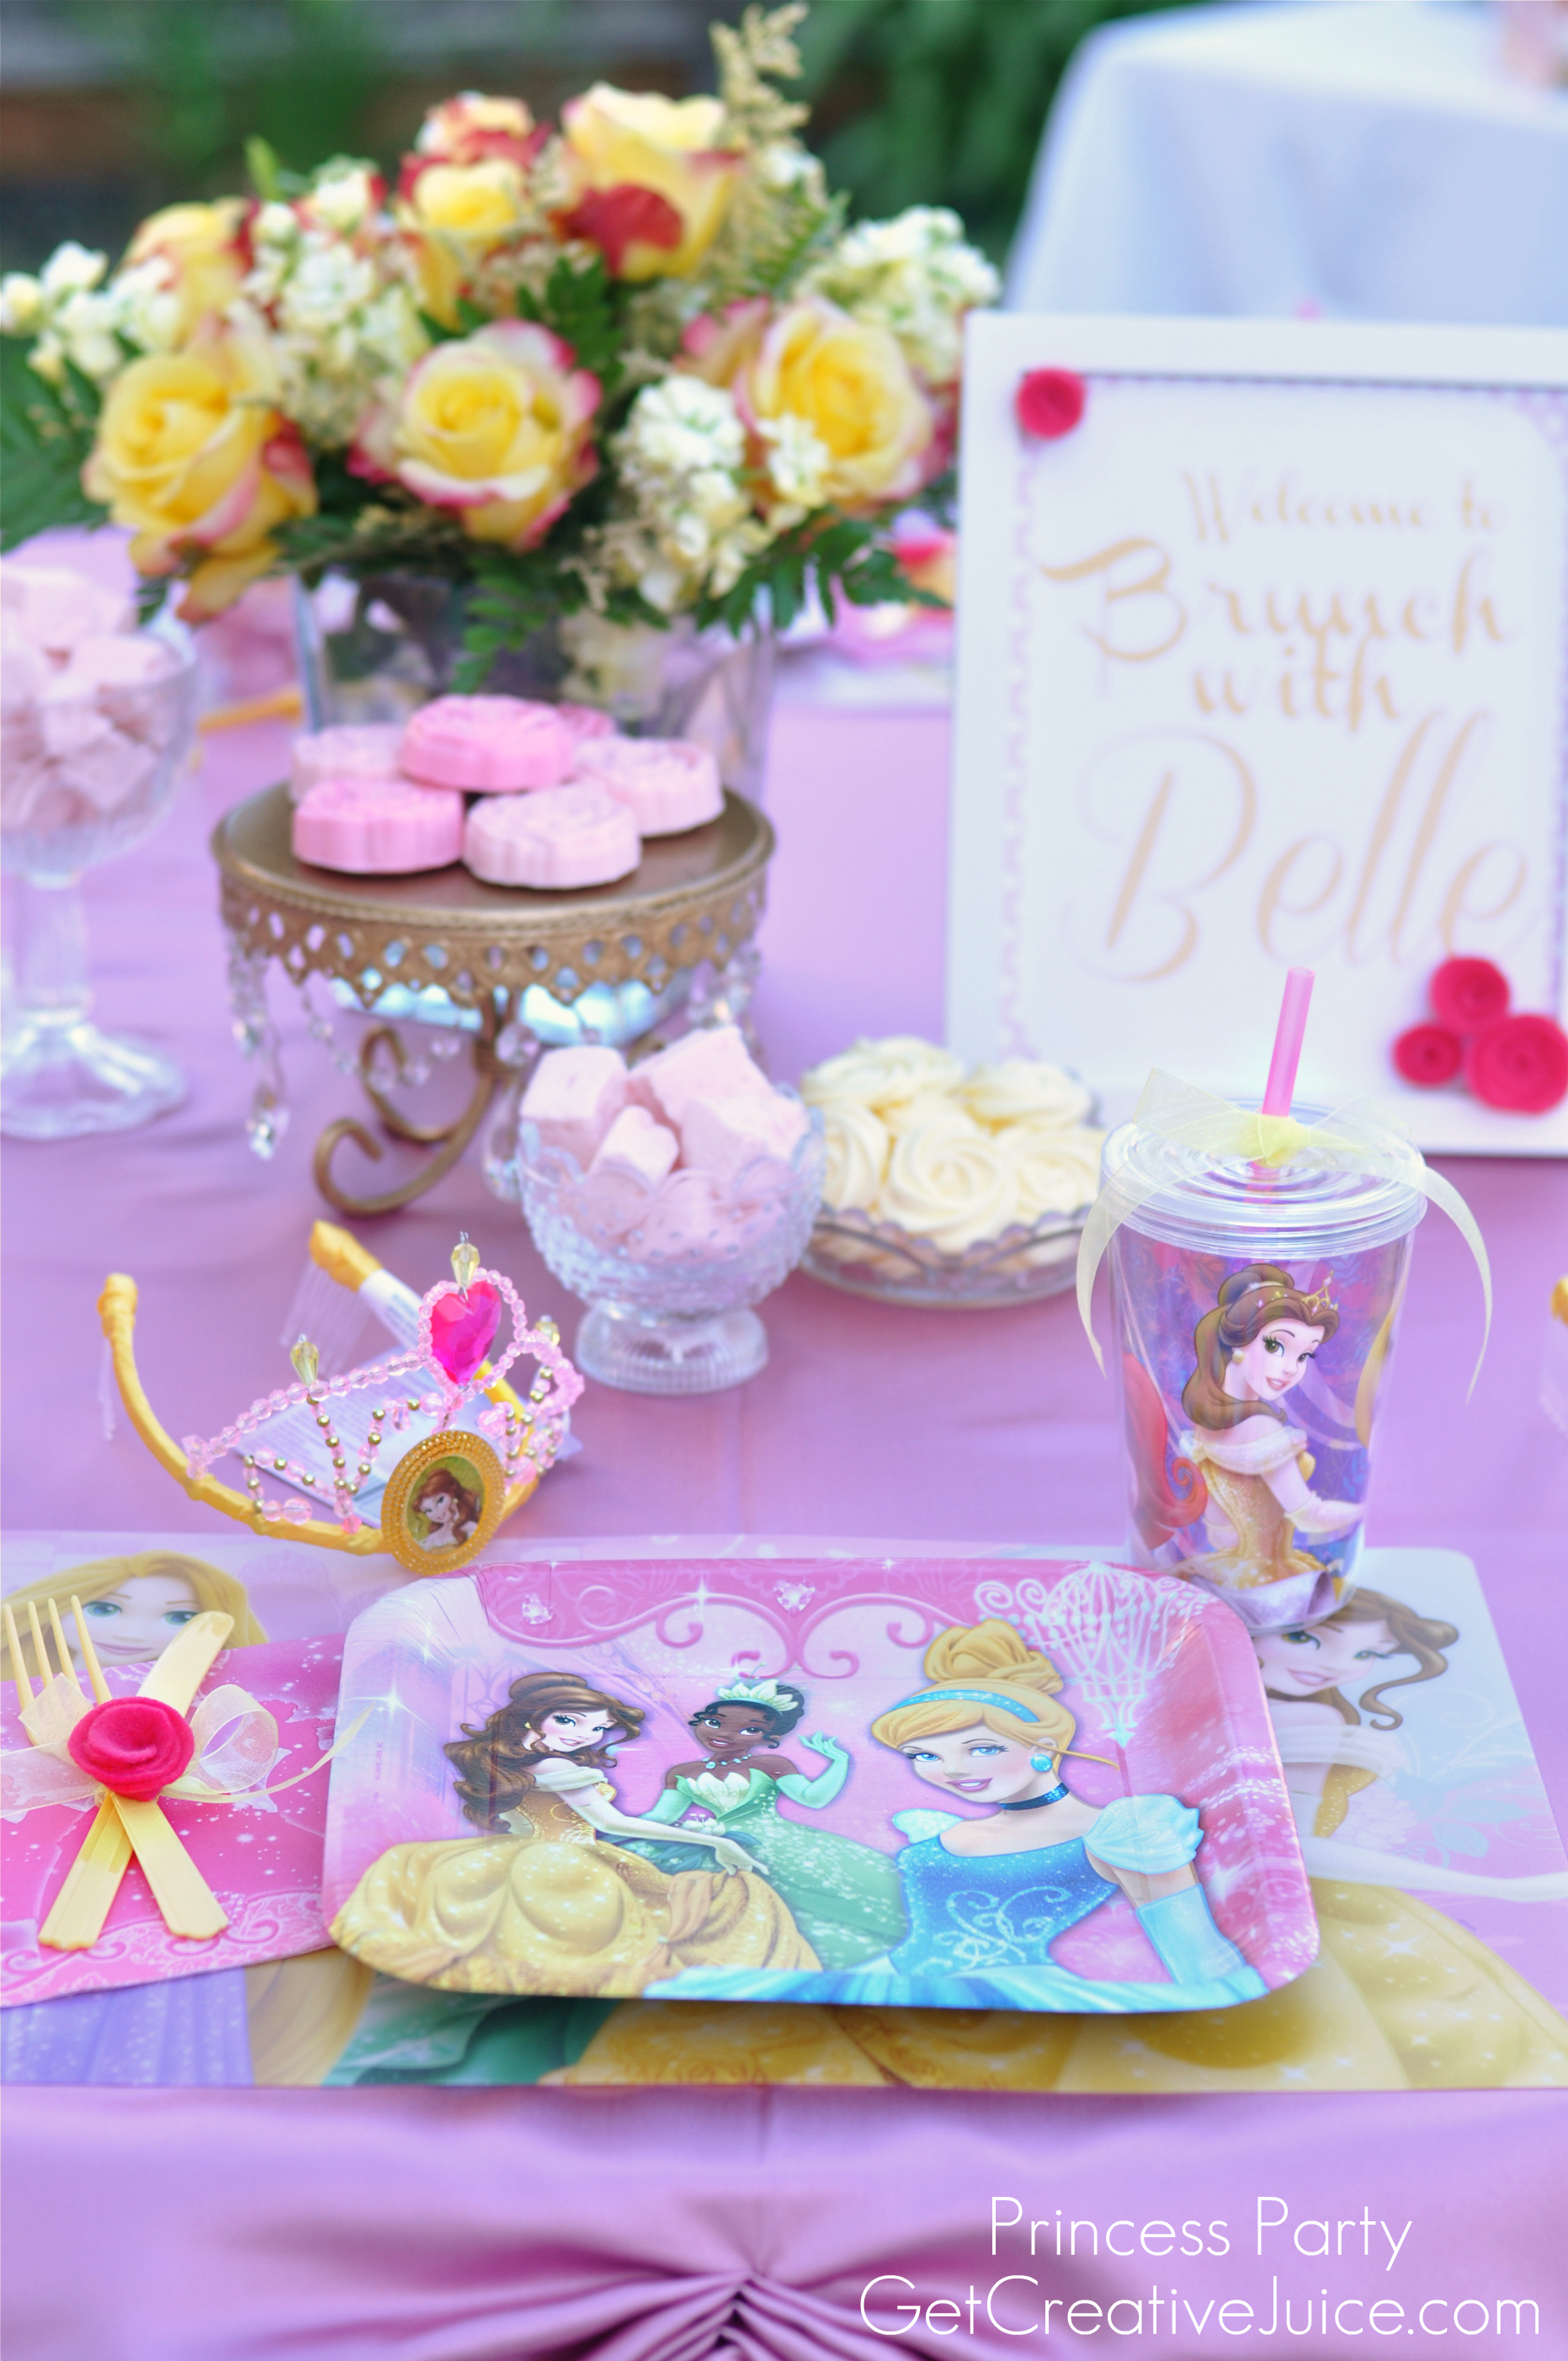 disney princess party with belle part one creative juice. Black Bedroom Furniture Sets. Home Design Ideas